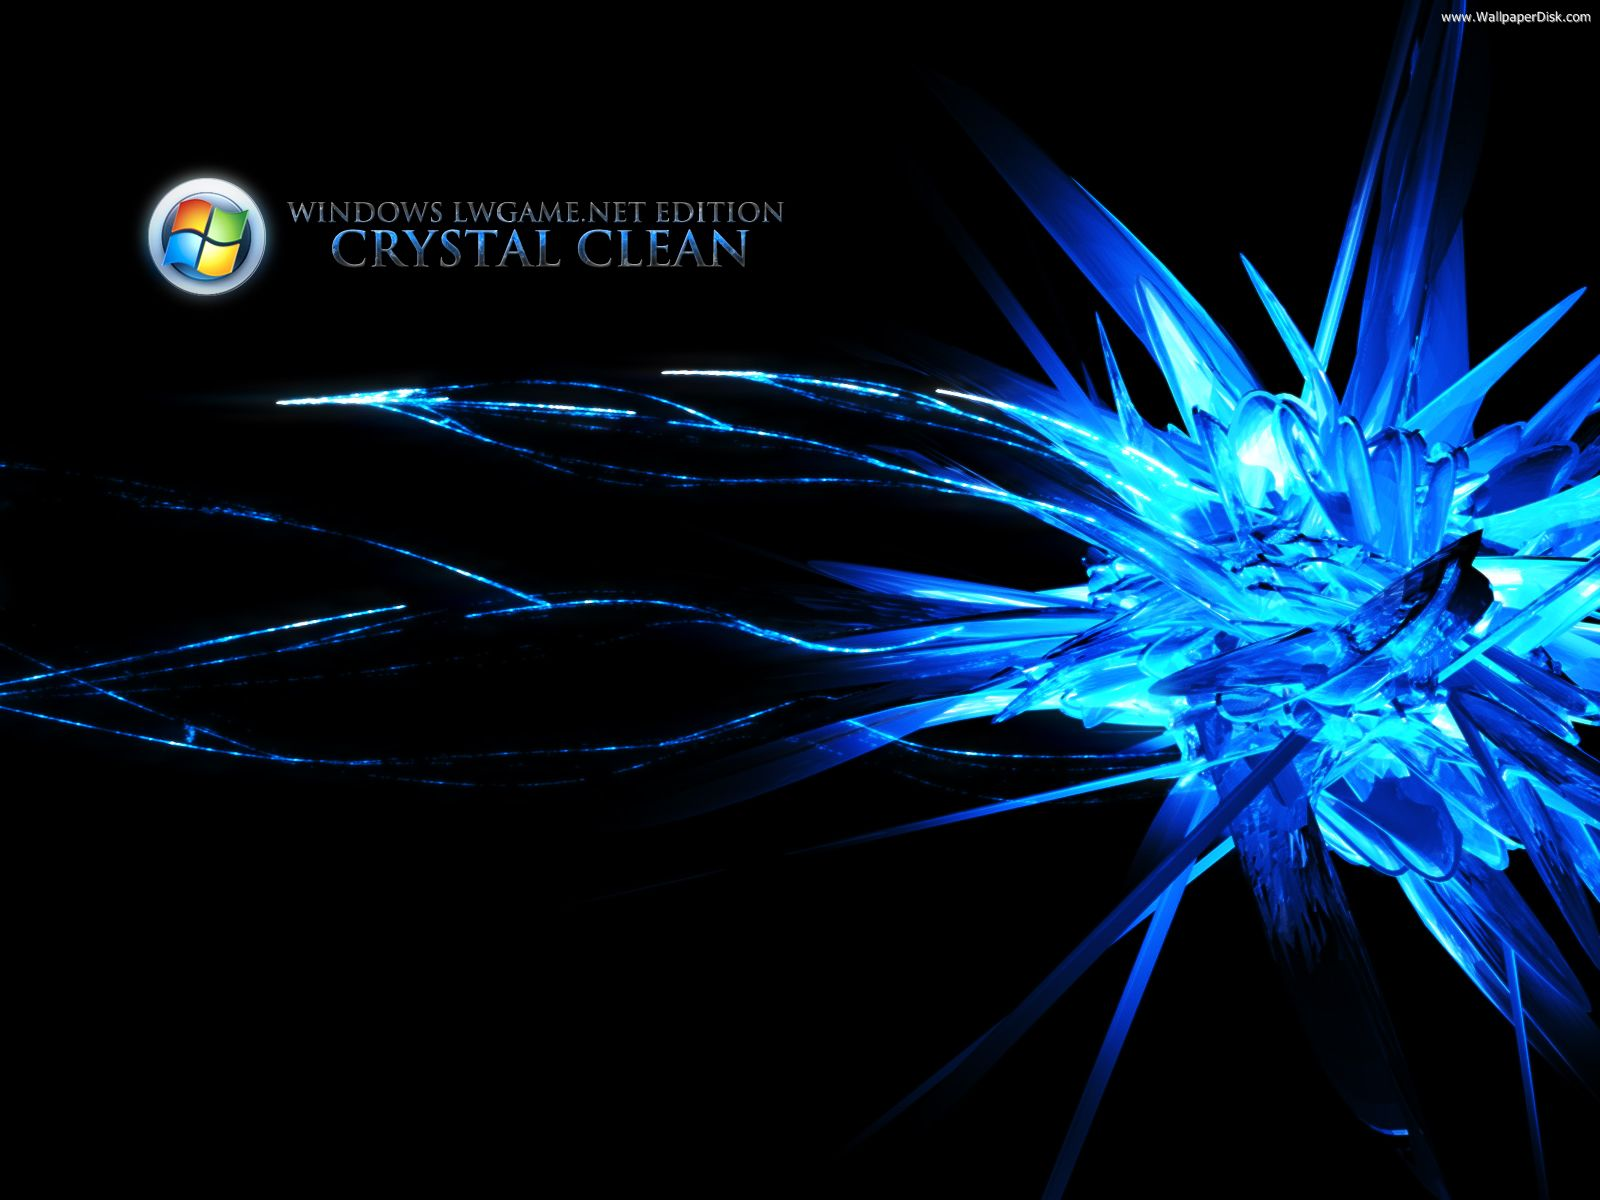 Best Crystal clean wallpaper desktop wallpapers background collection 1600x1200